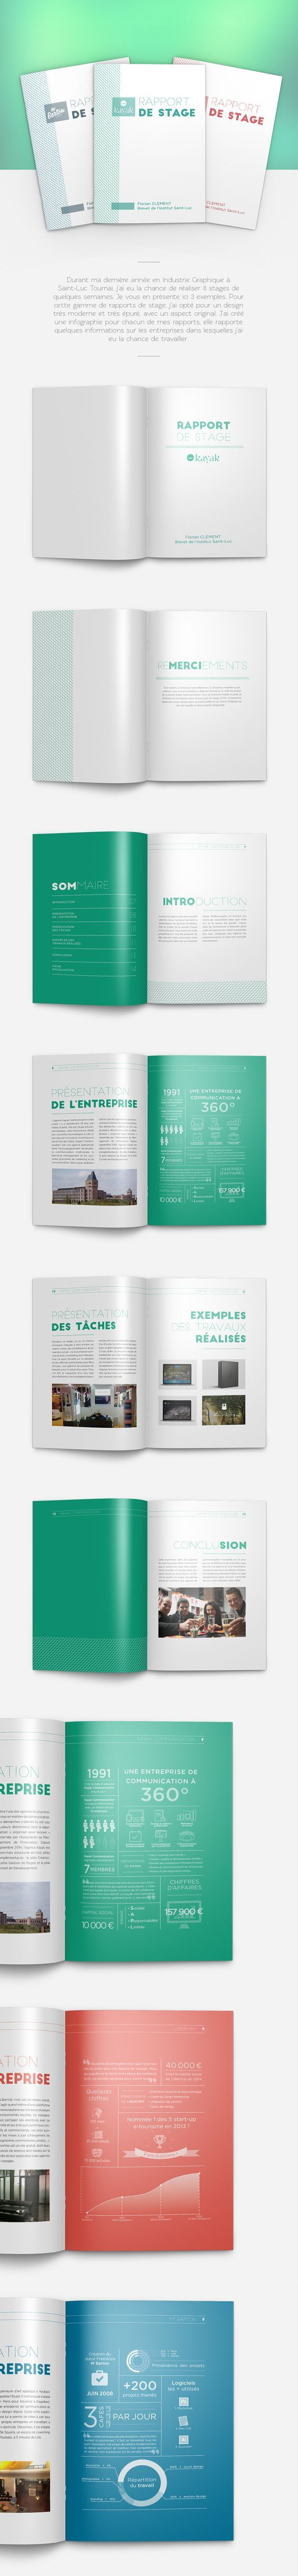 Rapport de stage on Behance: